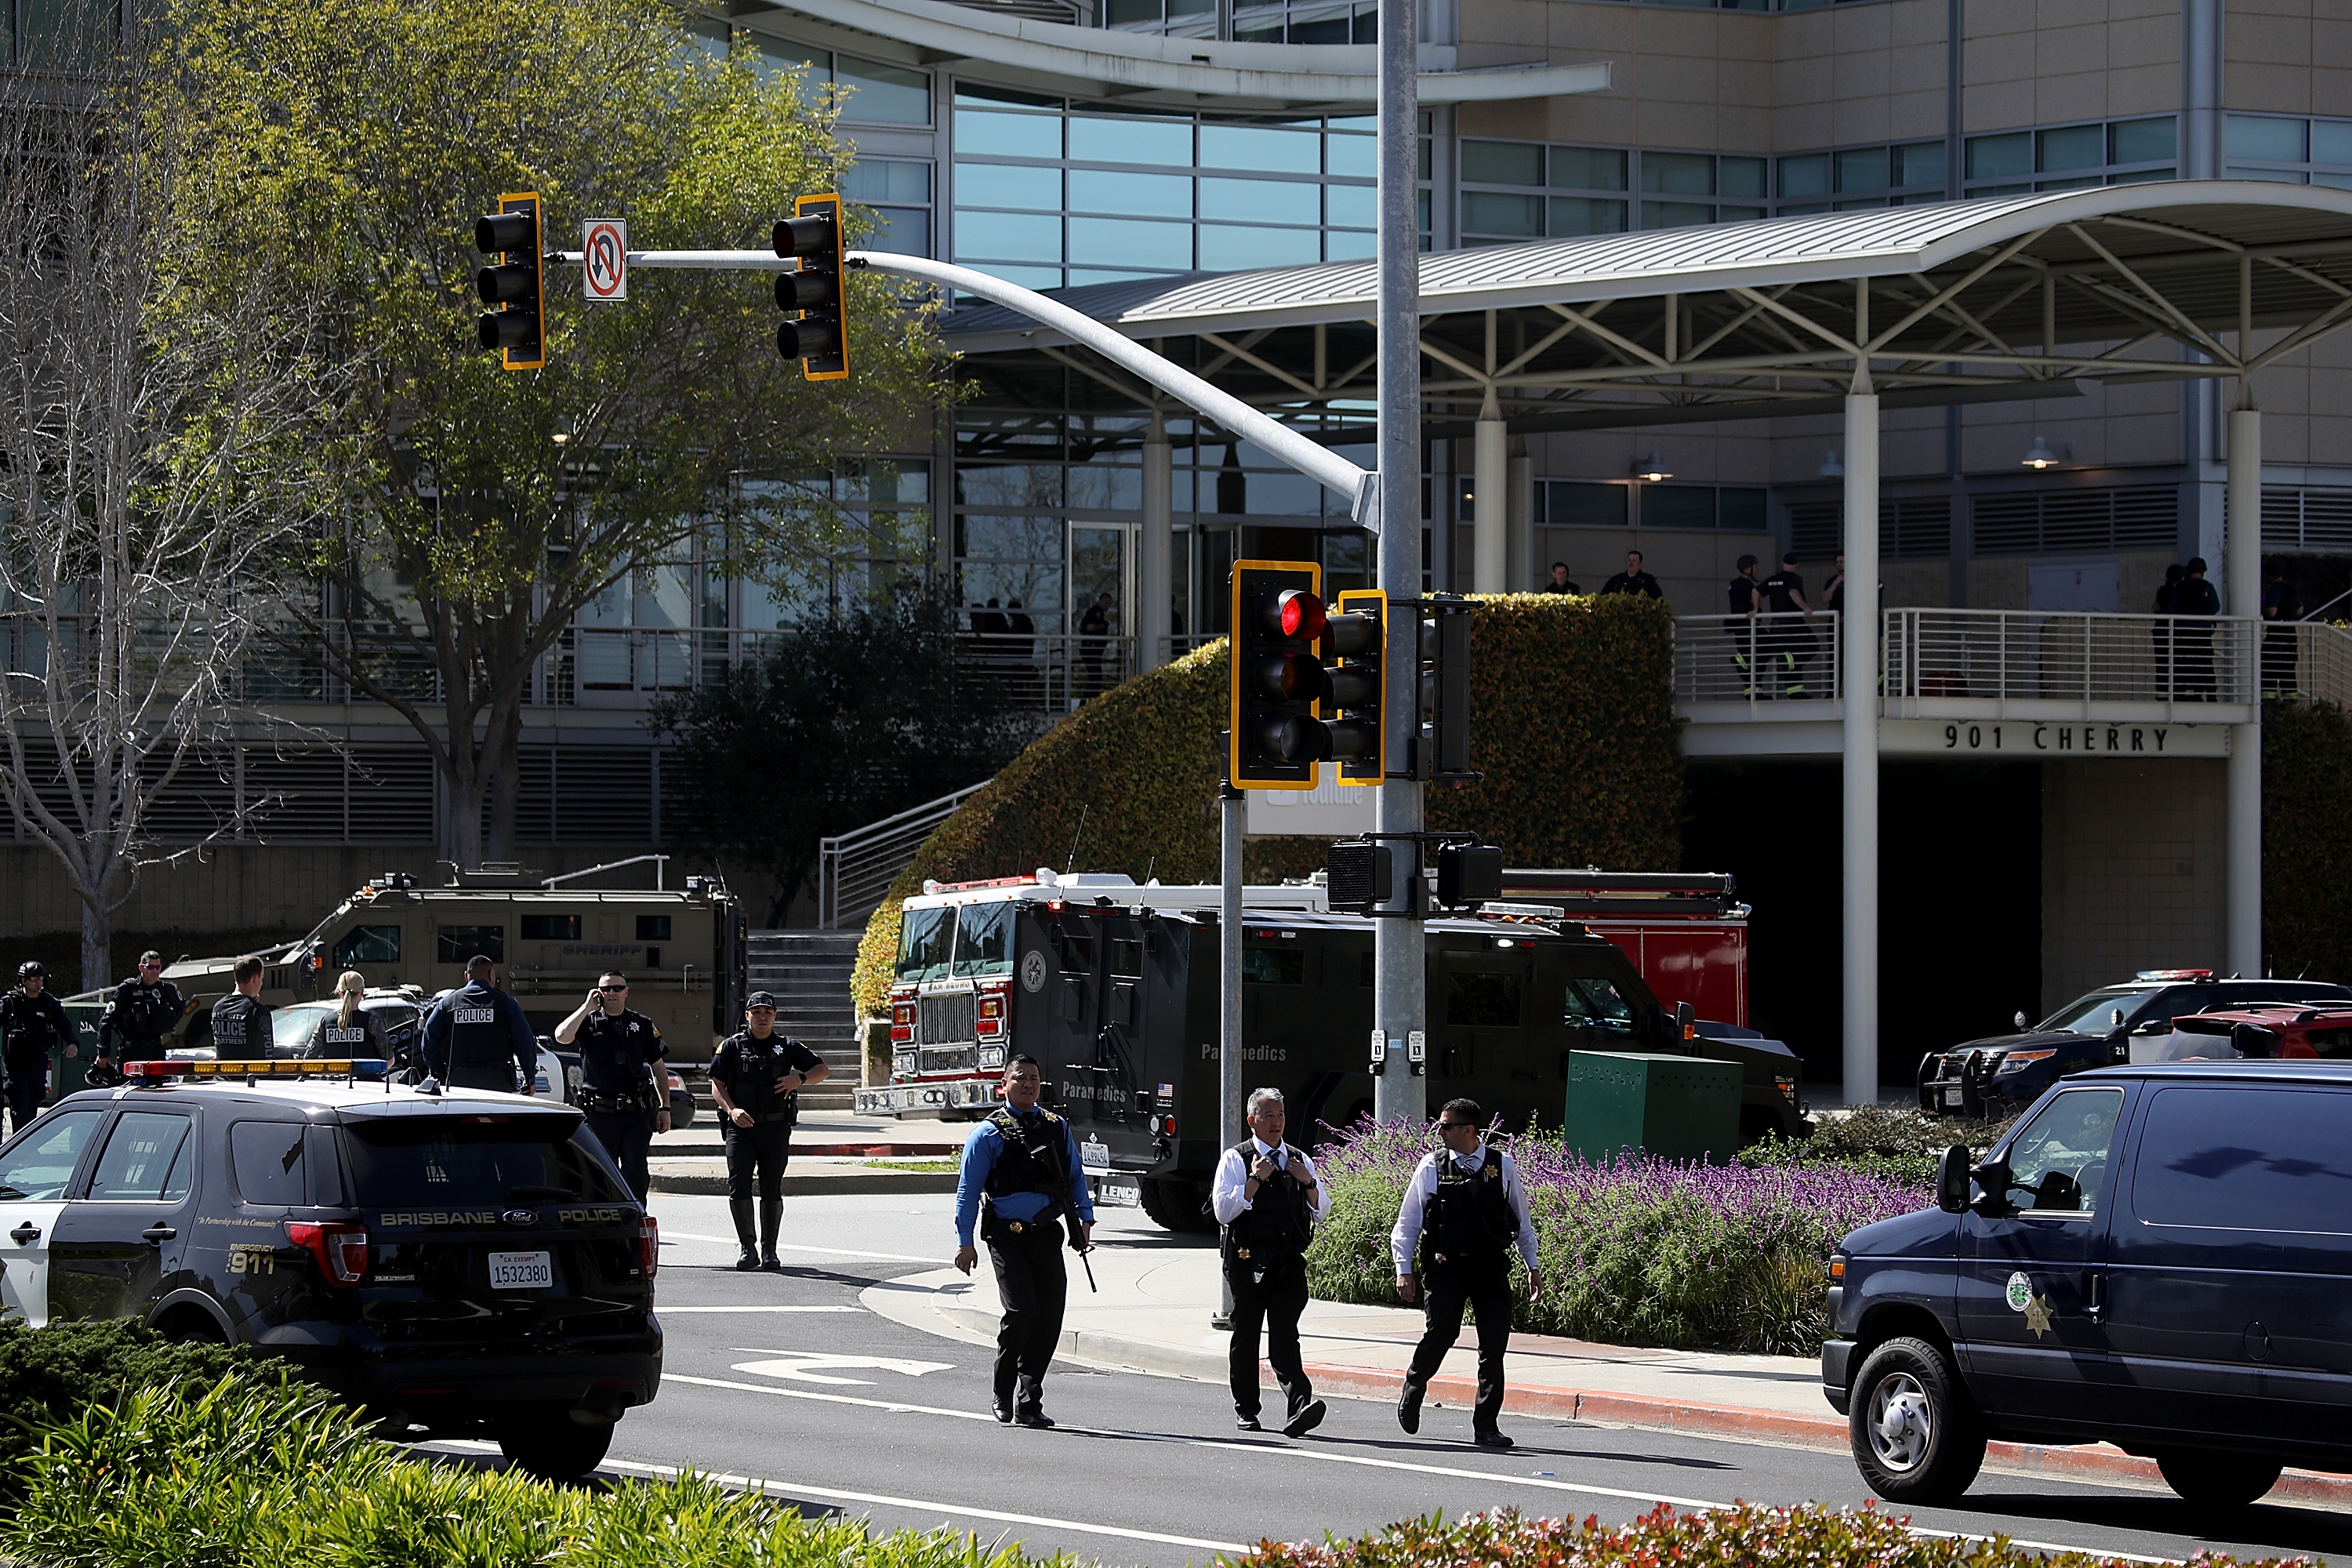 Outside YouTube headquarters in San Bruno, California, after a person opened fire.